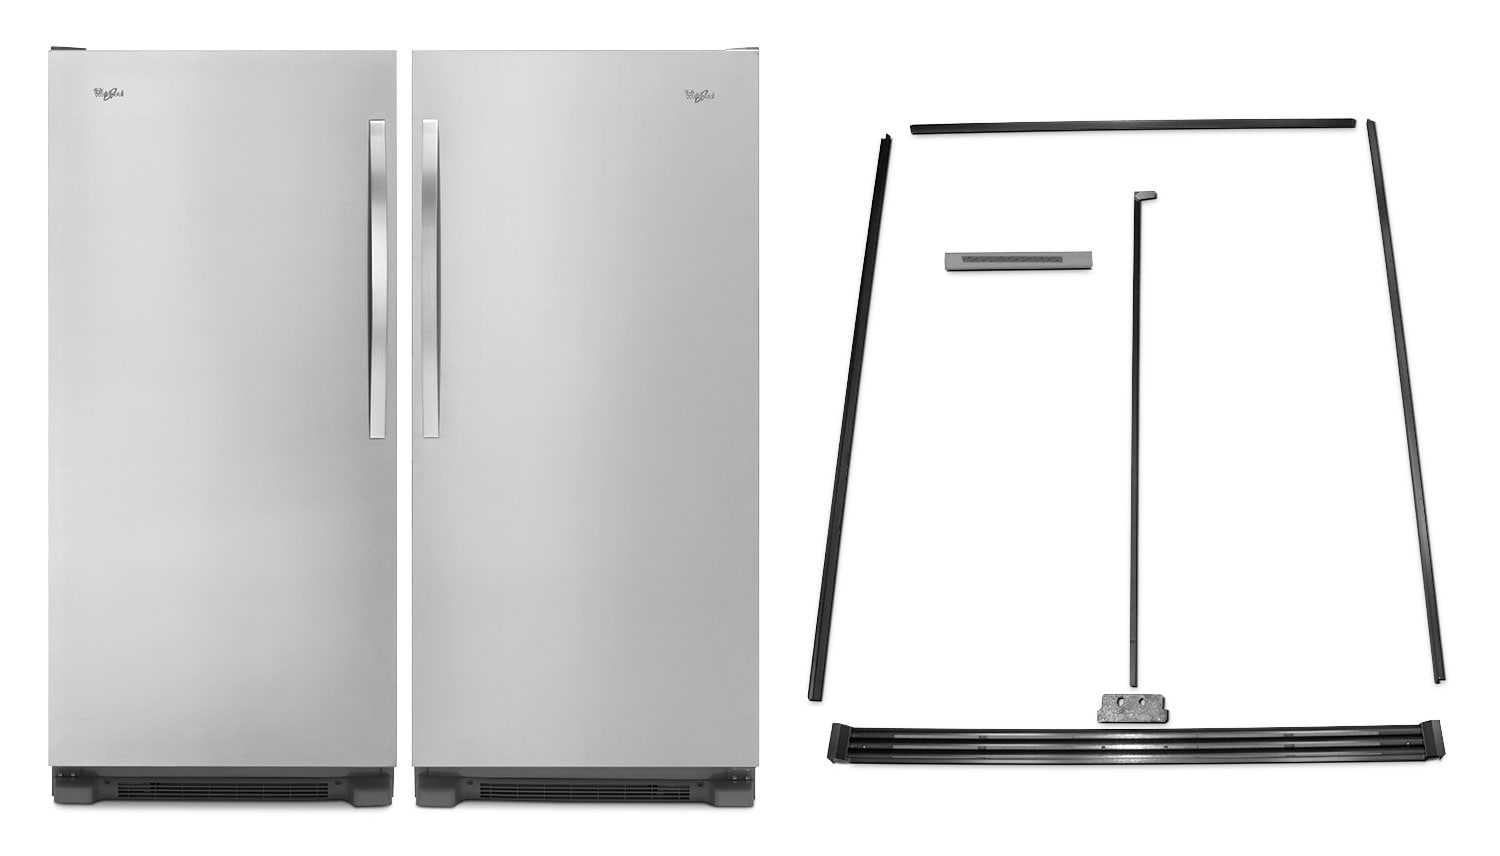 Refrigerators and Freezers - Whirlpool SideKicks® 18 Cu. Ft. All-Refrigerator, 18 Cu. Ft. All-Freezer and Trim Kit